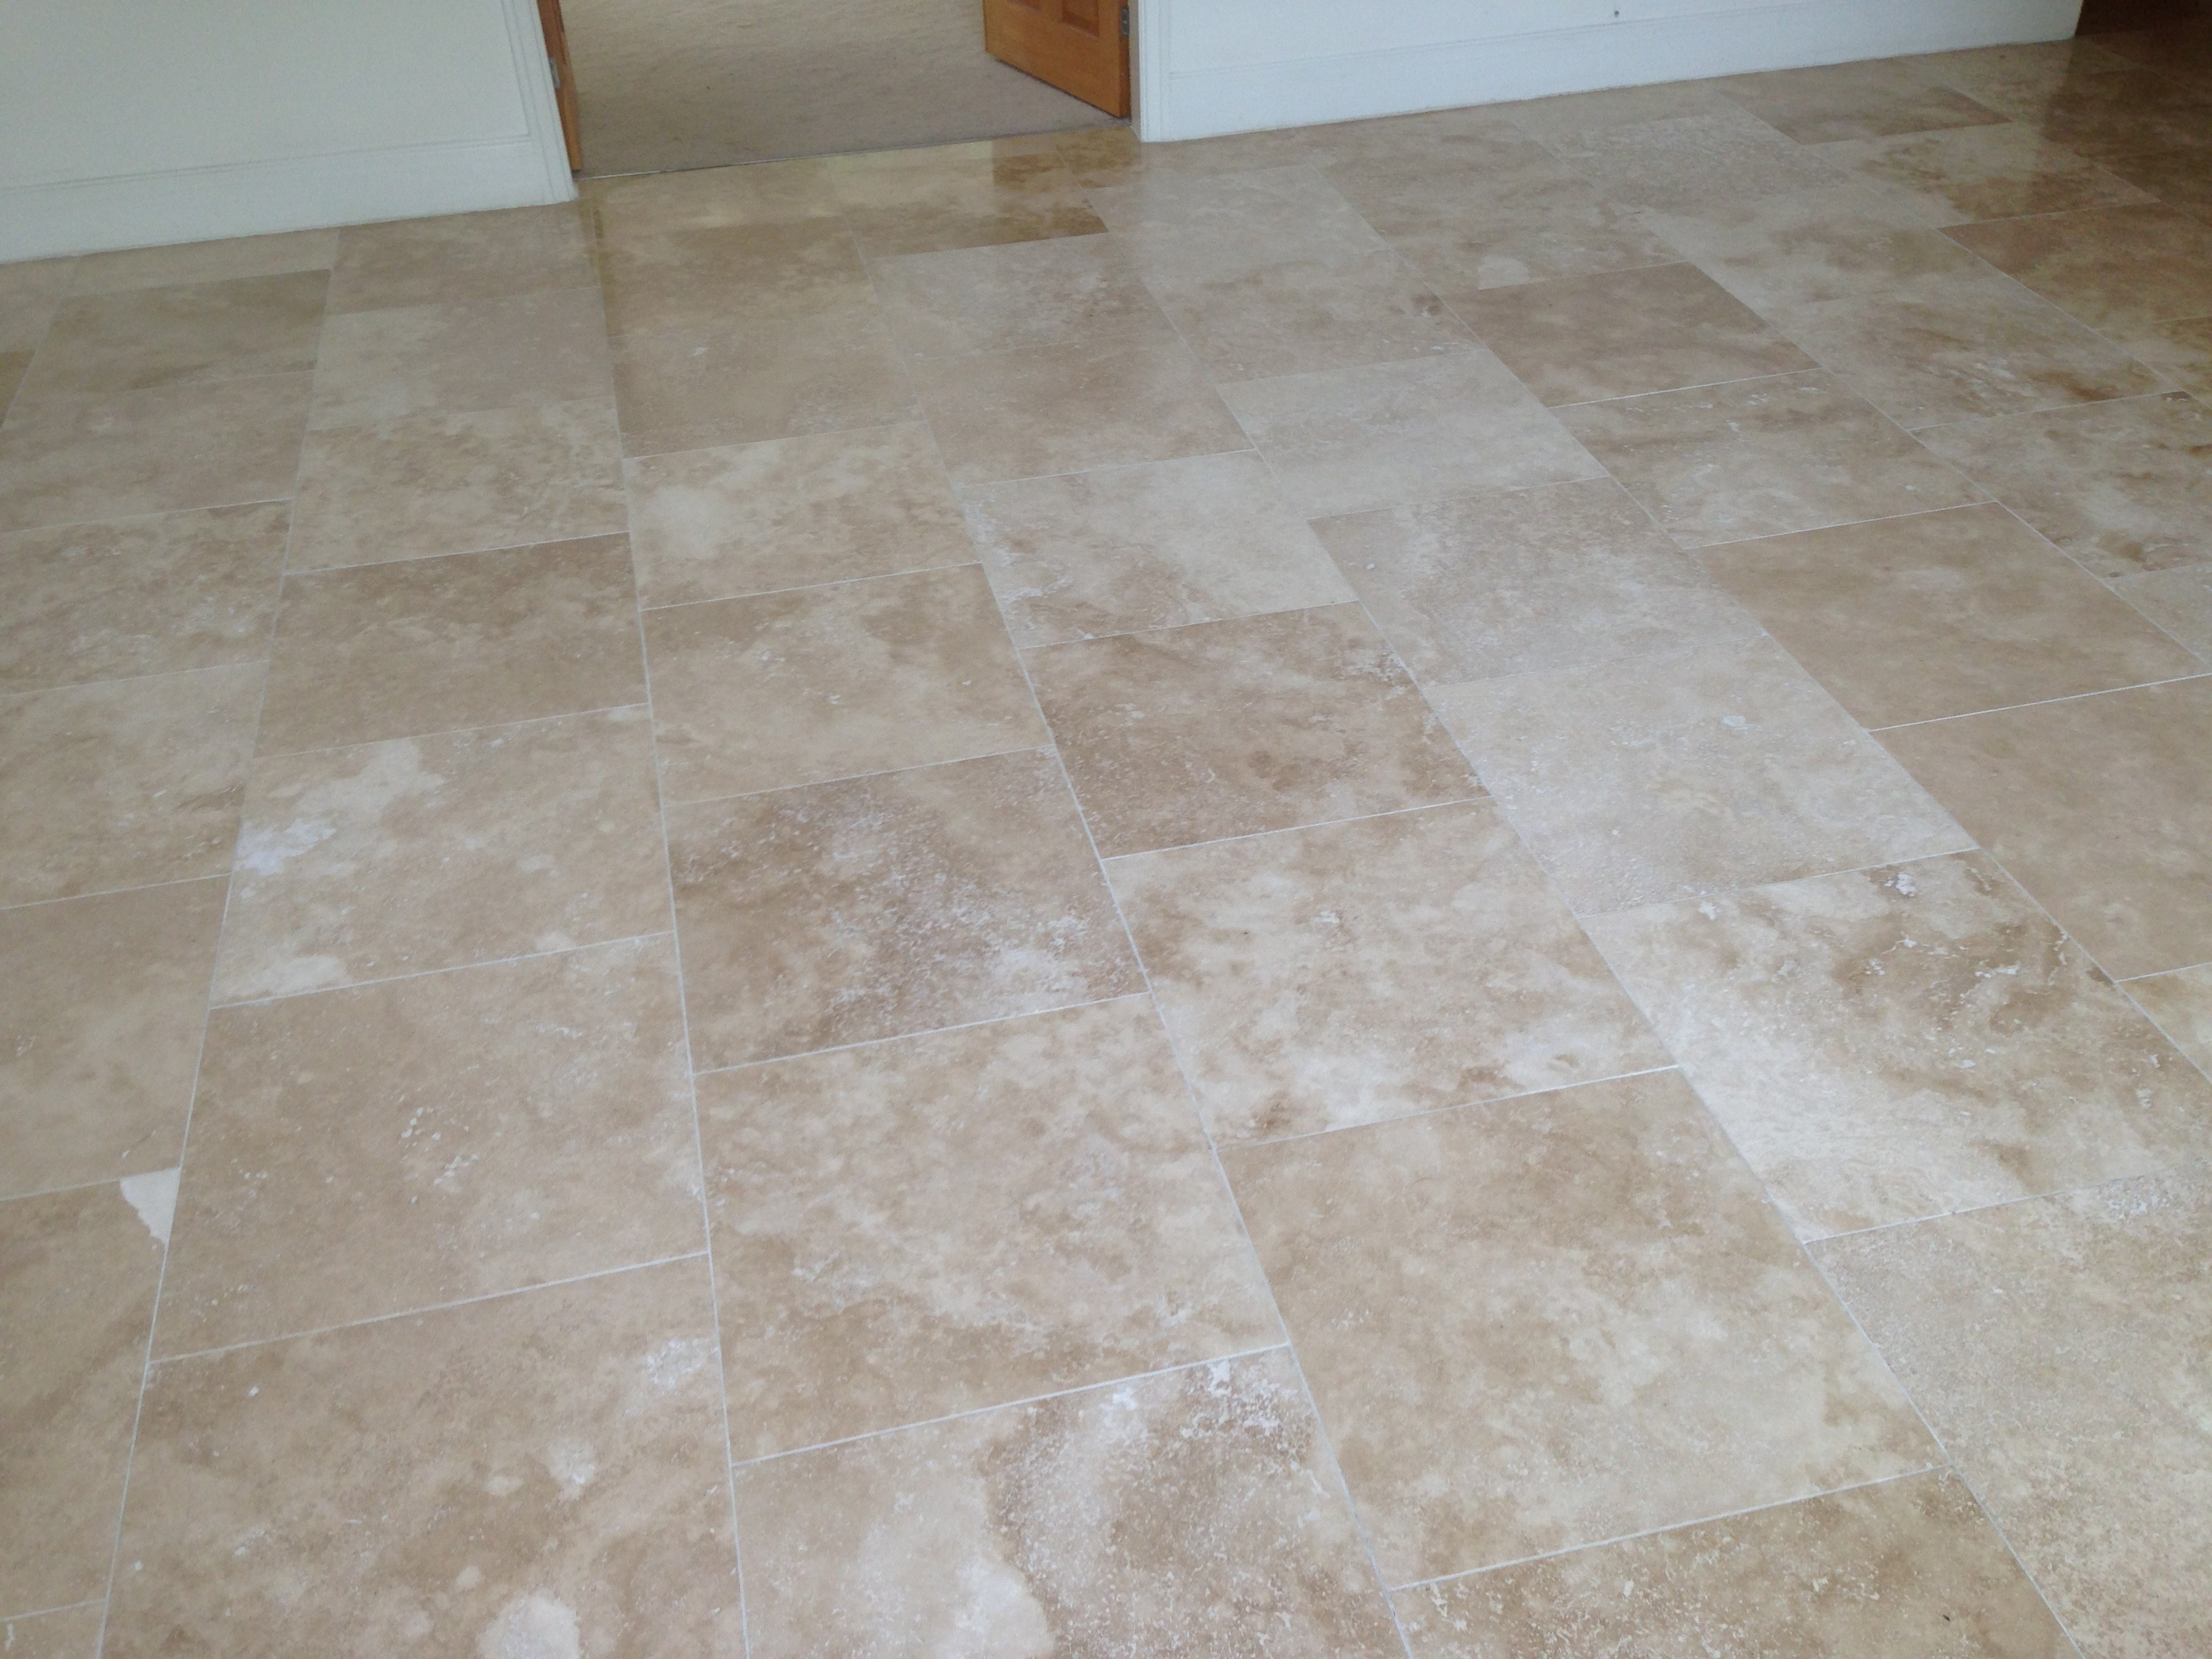 Travertine Countertop Care Travertine Floor Cleaning Polishing Gallery Absolute